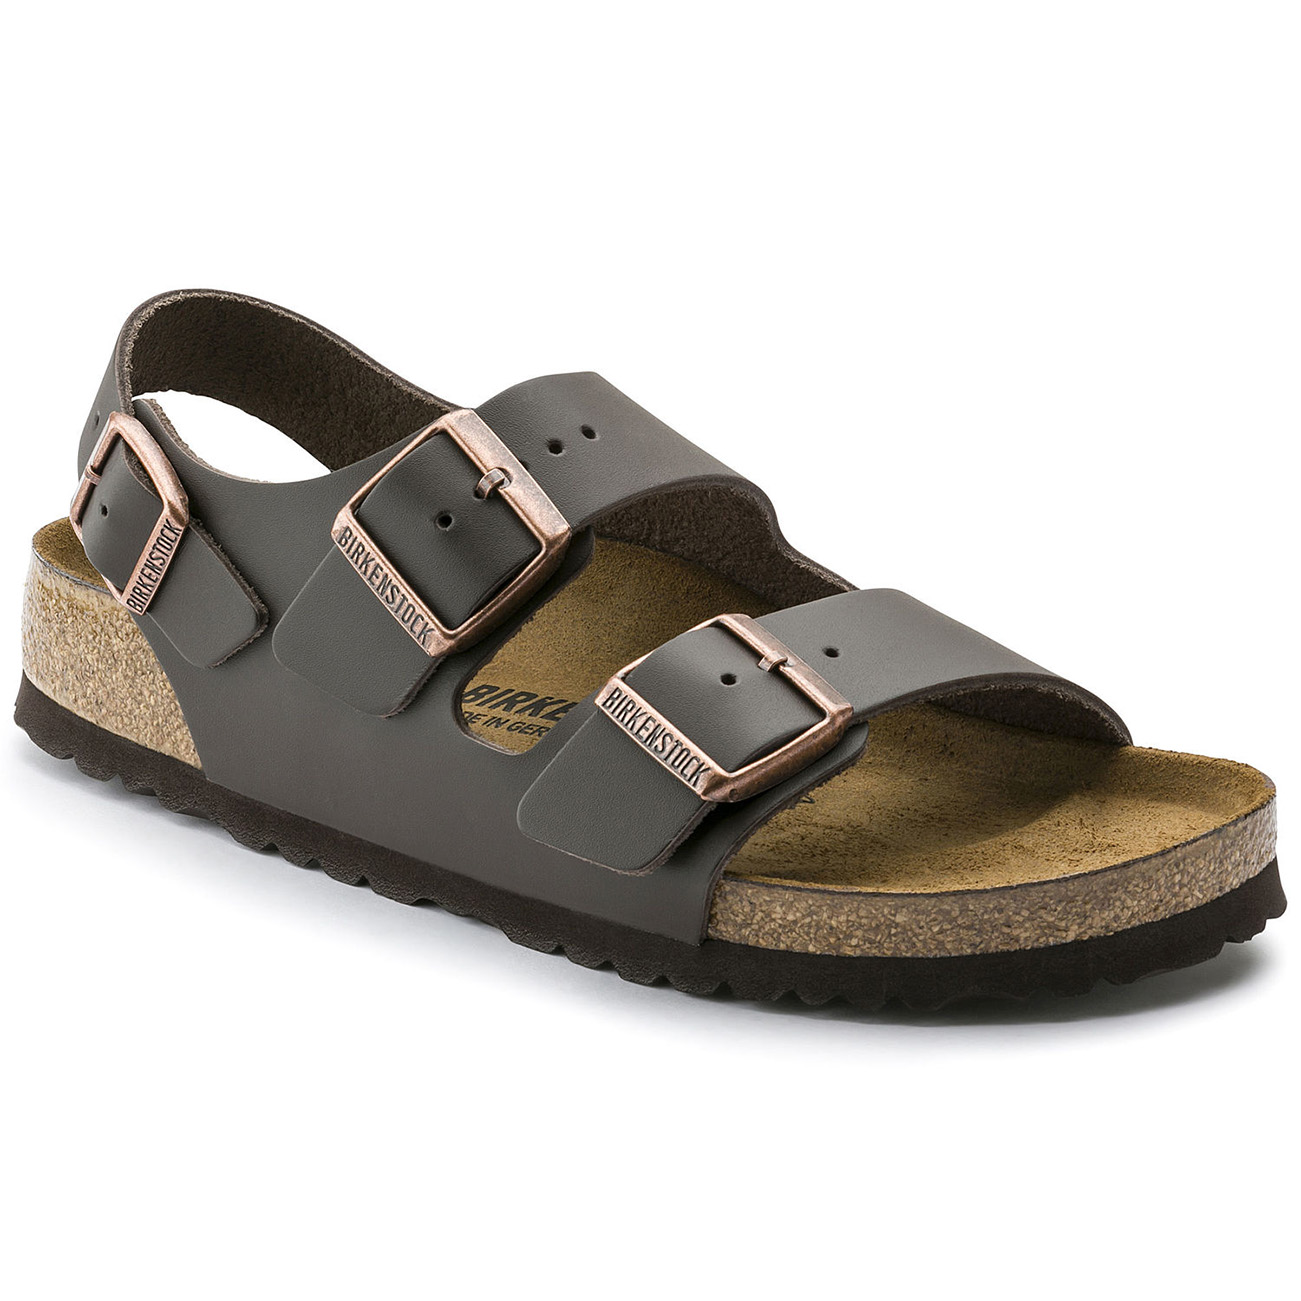 Unisex Adults Birkenstock Milano Smooth Leather